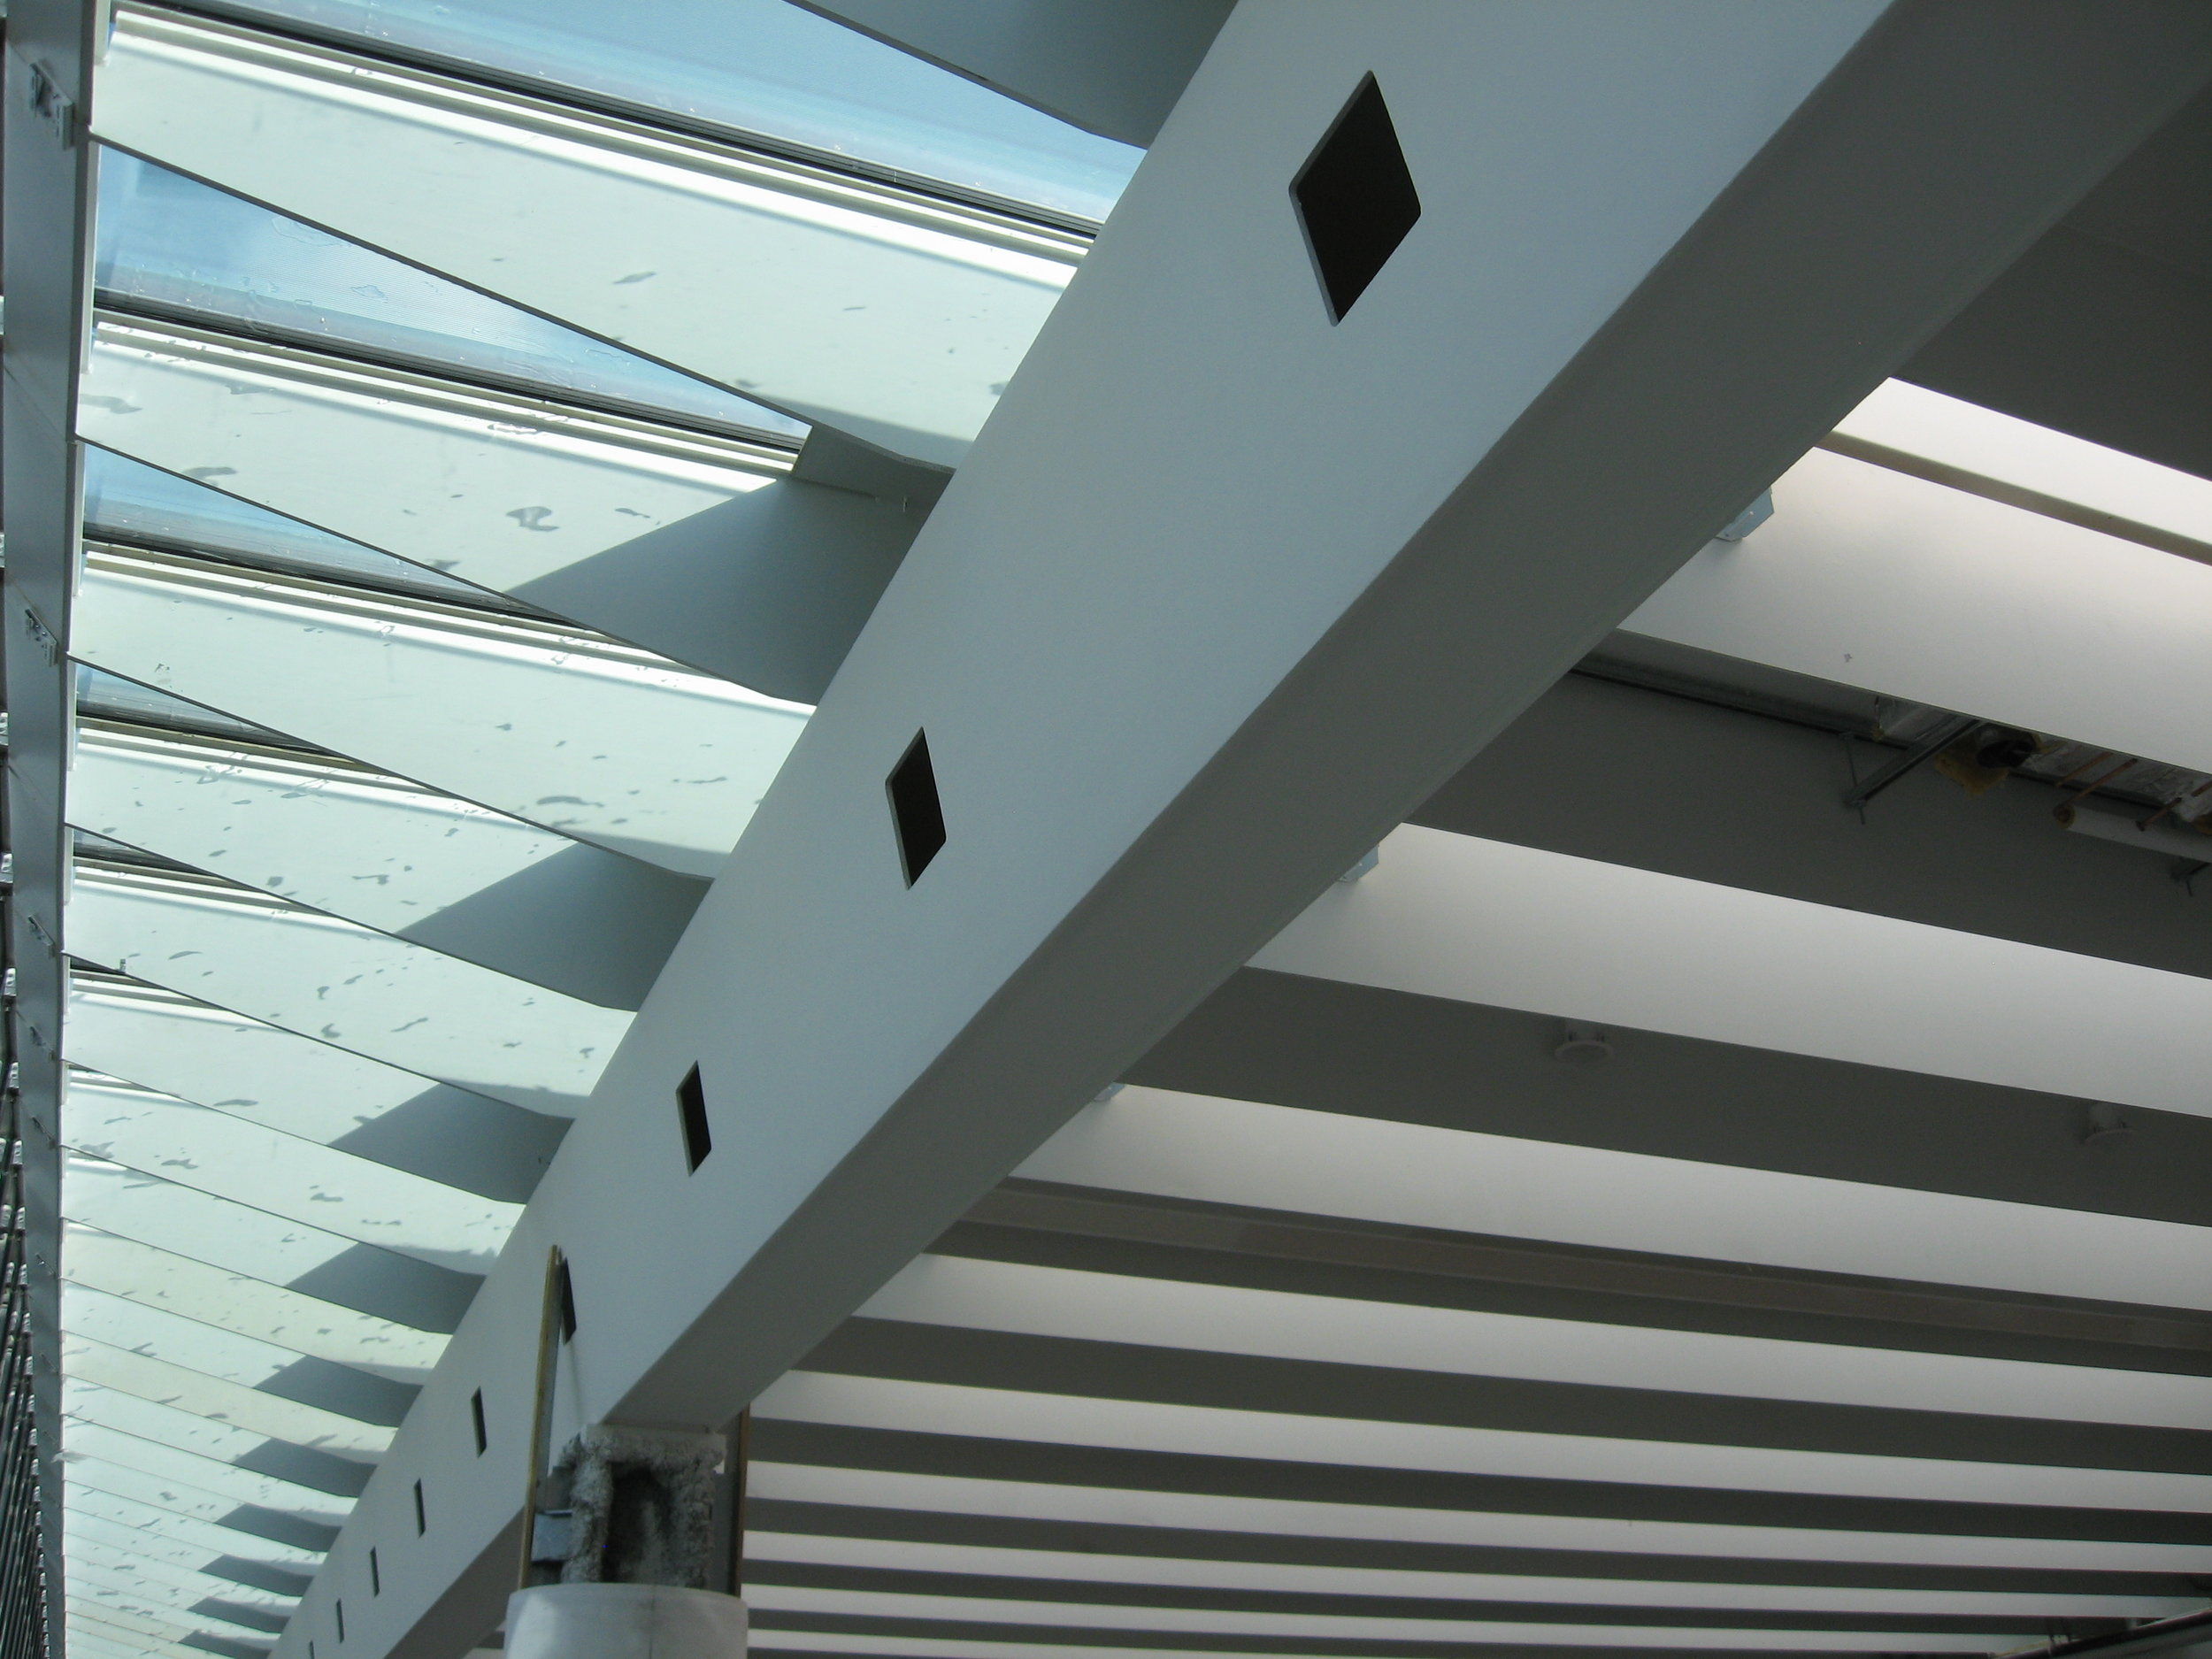 INTUMESCENT COATINGS - As an alternate to cementitious fireproofing, this finish product is used for exposed steel in public spaces such as lobbies, atriums or any area where the fireproofing is exposed and a superior look and finish is required.